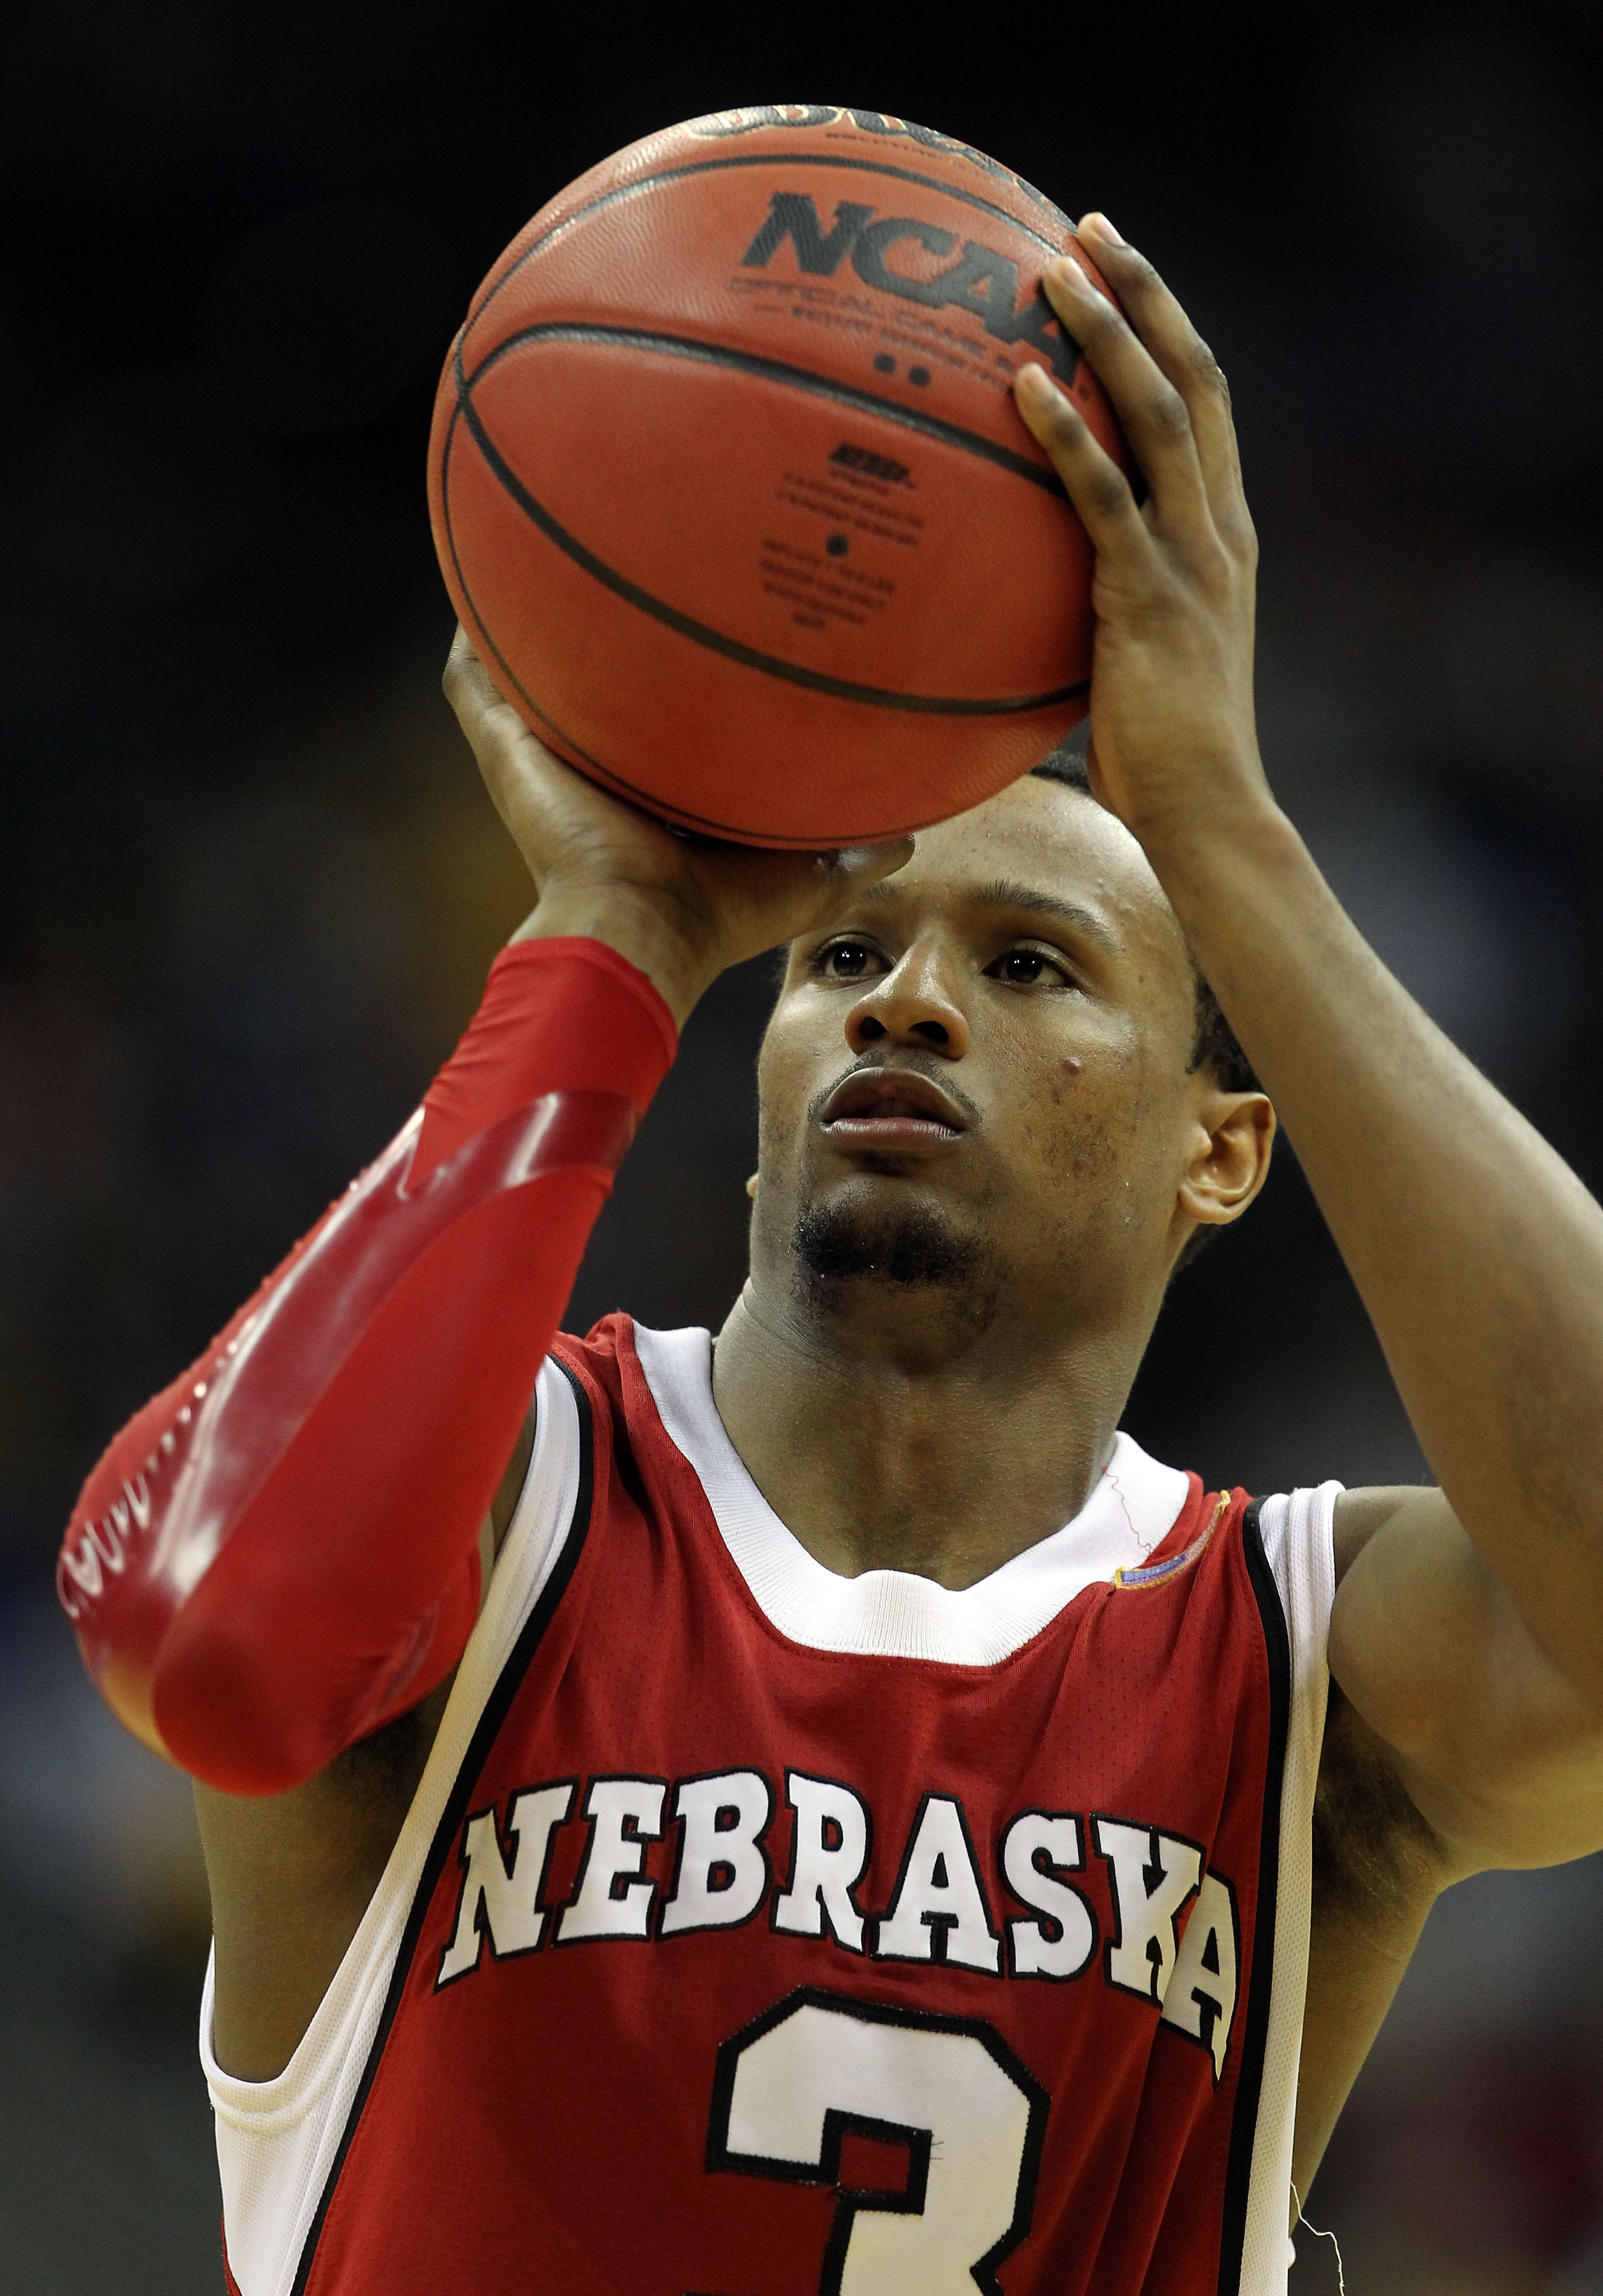 KANSAS CITY, MO - MARCH 10:  Brandon Richardson #3 of the Nebraska Cornhuskers shoots a free throw in the second half against the Missouri Tigers during the first round game of the 2010 Phillips 66 Big 12 Men's Basketball Tournament at the Sprint Center o